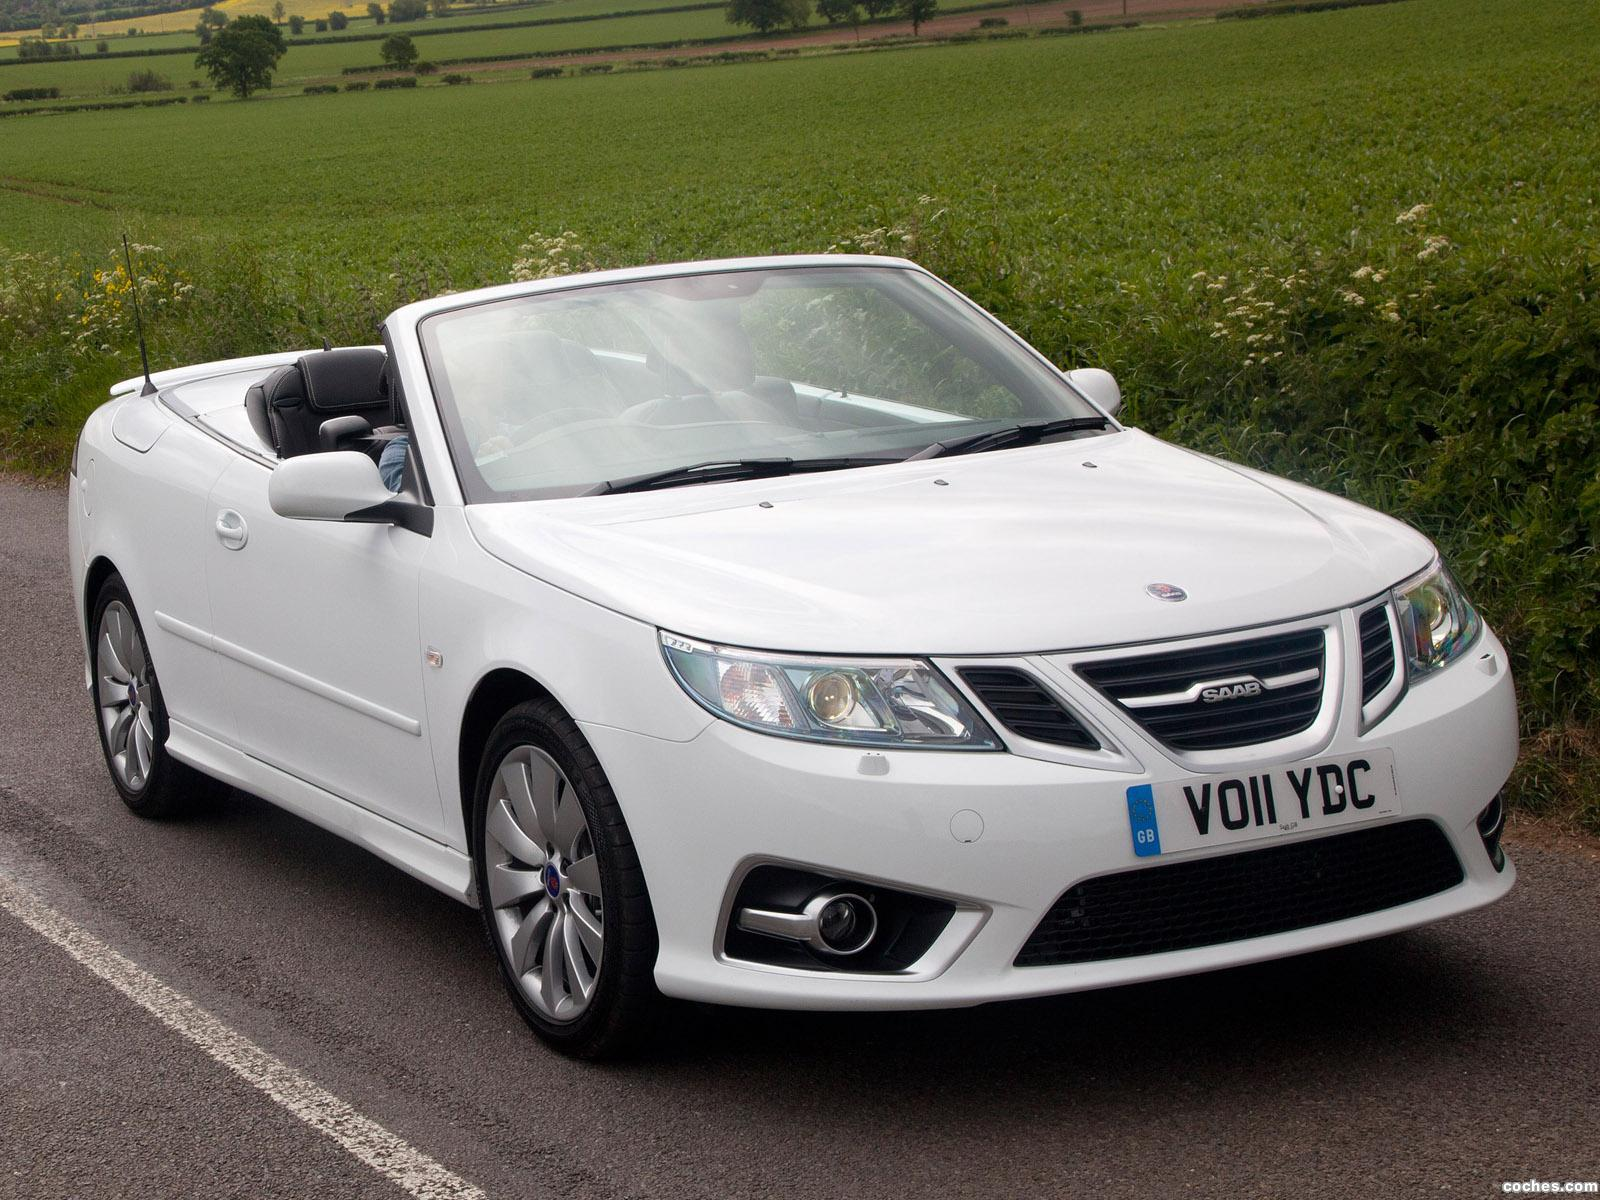 fotos de saab 9 3 griffin convertible aero uk 2011. Black Bedroom Furniture Sets. Home Design Ideas